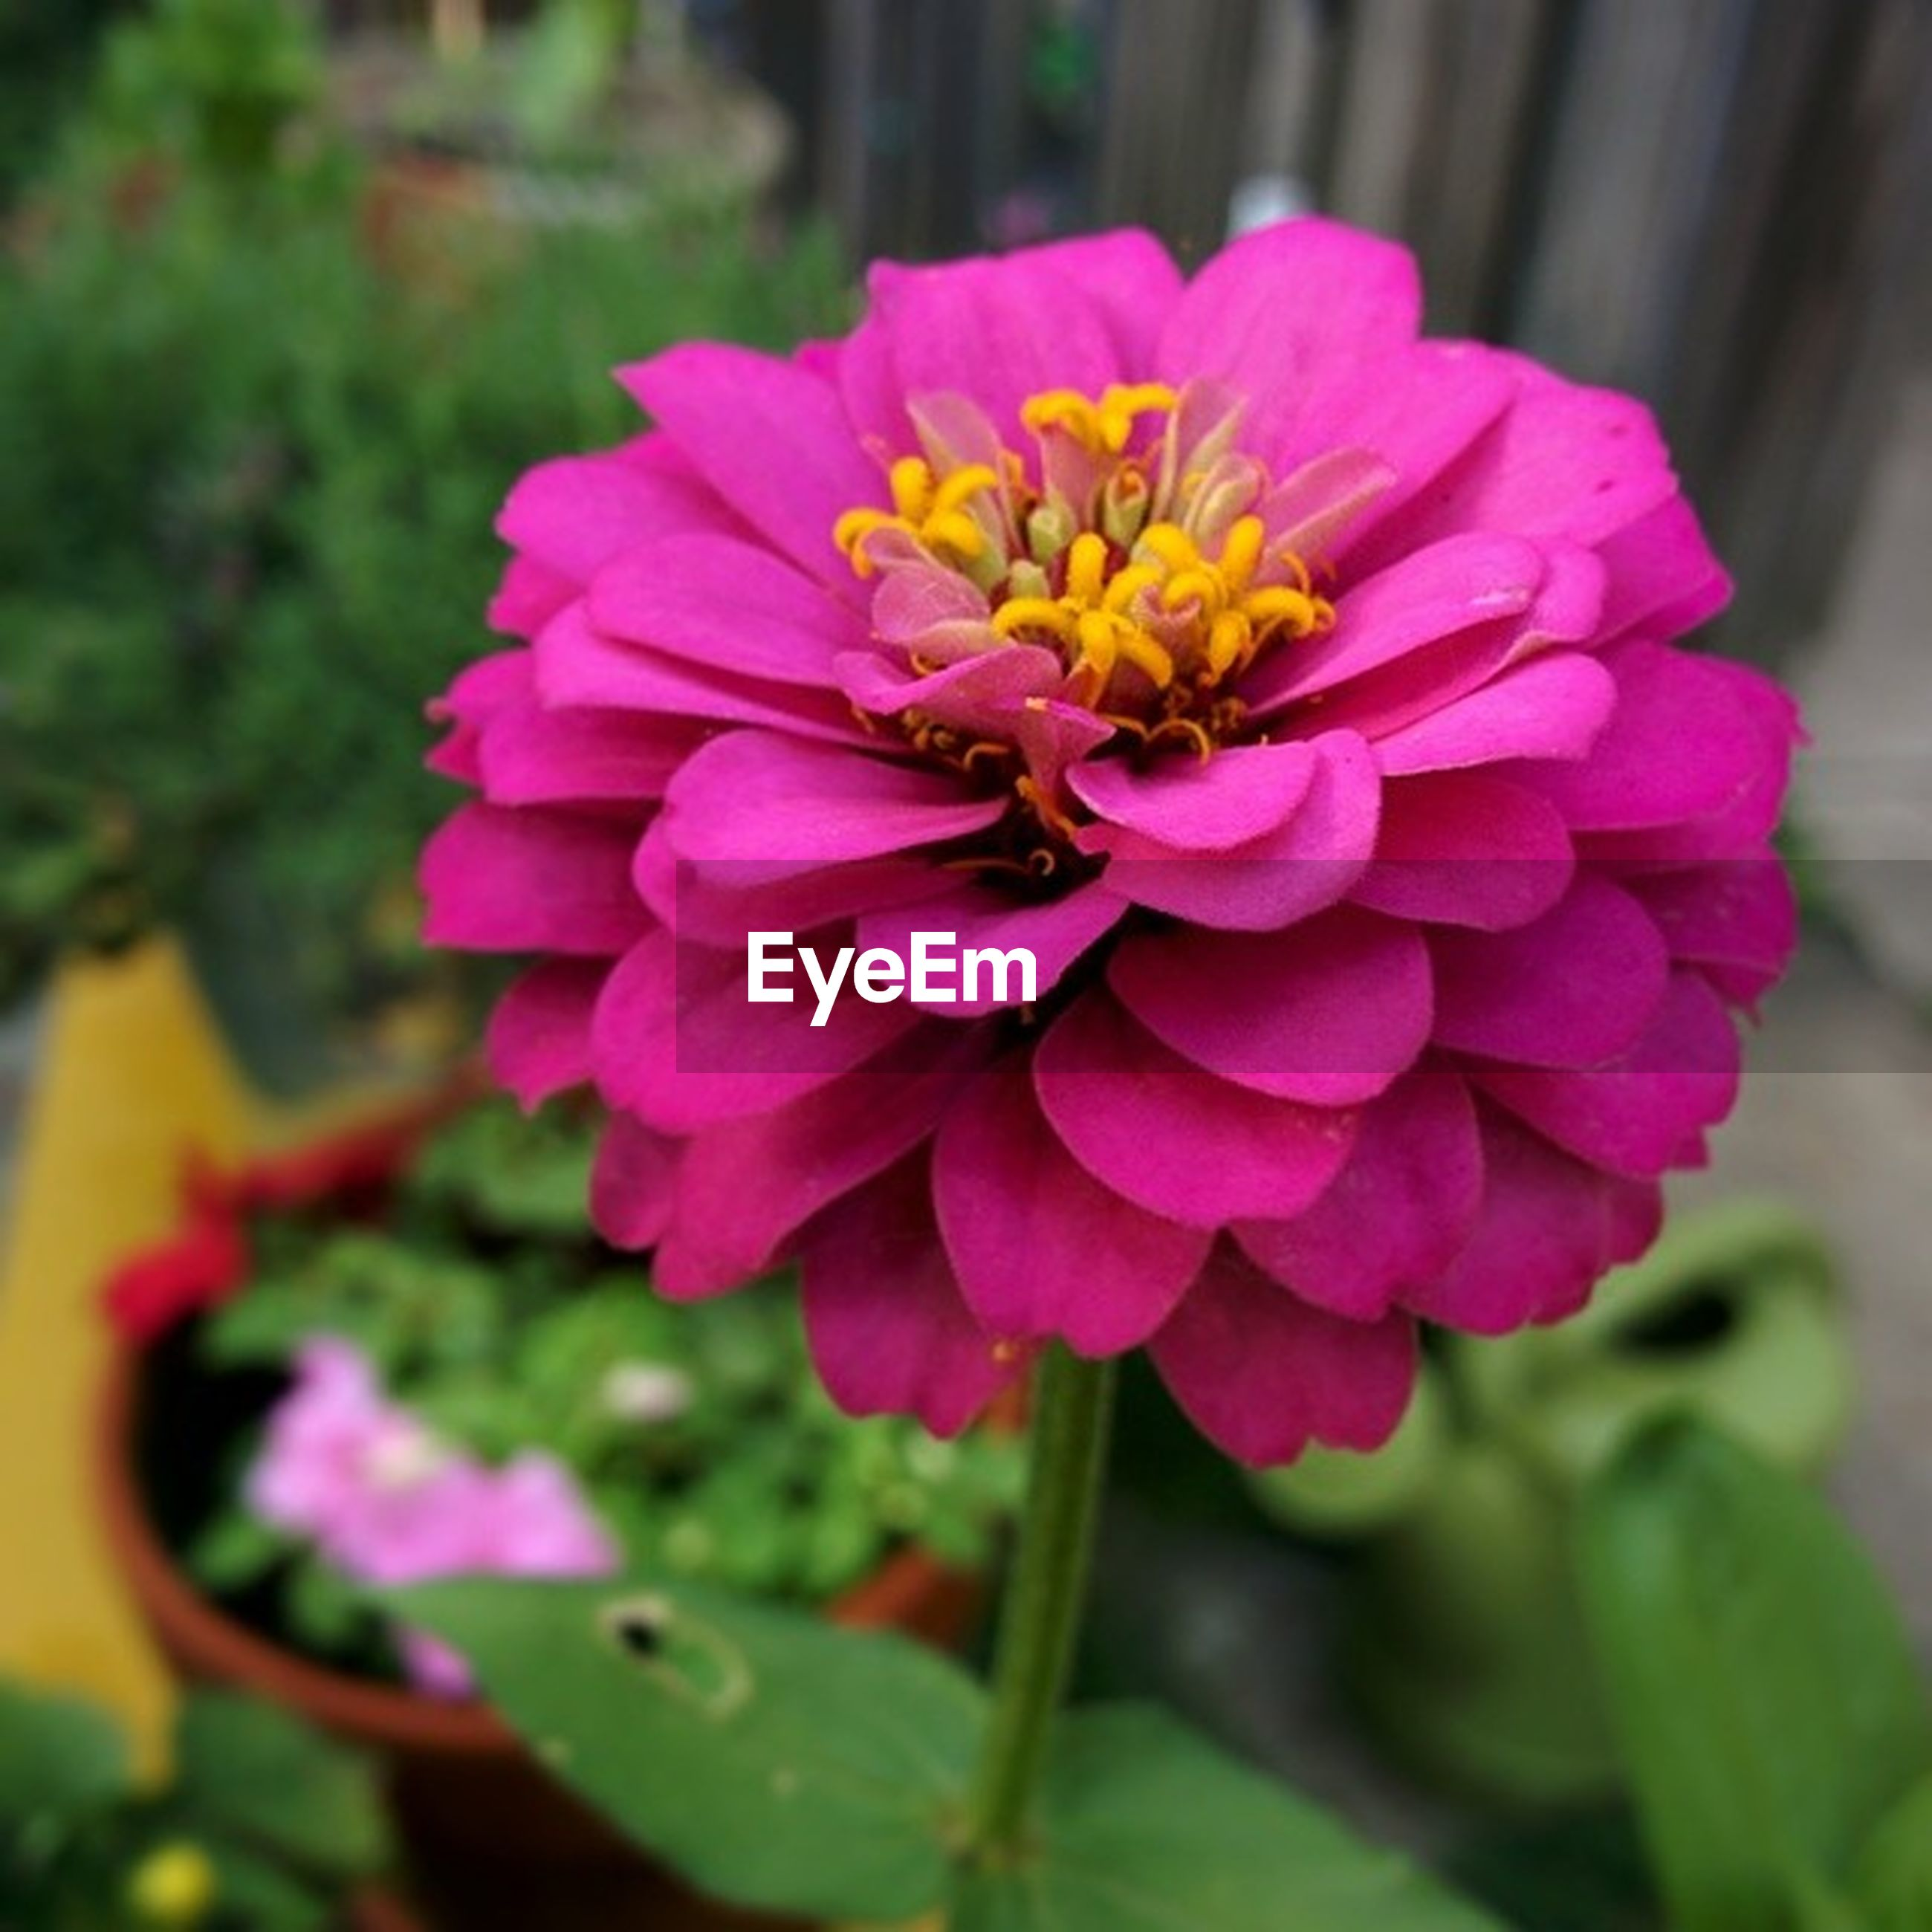 flower, petal, freshness, flower head, fragility, close-up, focus on foreground, beauty in nature, growth, pink color, blooming, single flower, nature, plant, in bloom, pollen, purple, day, selective focus, blossom